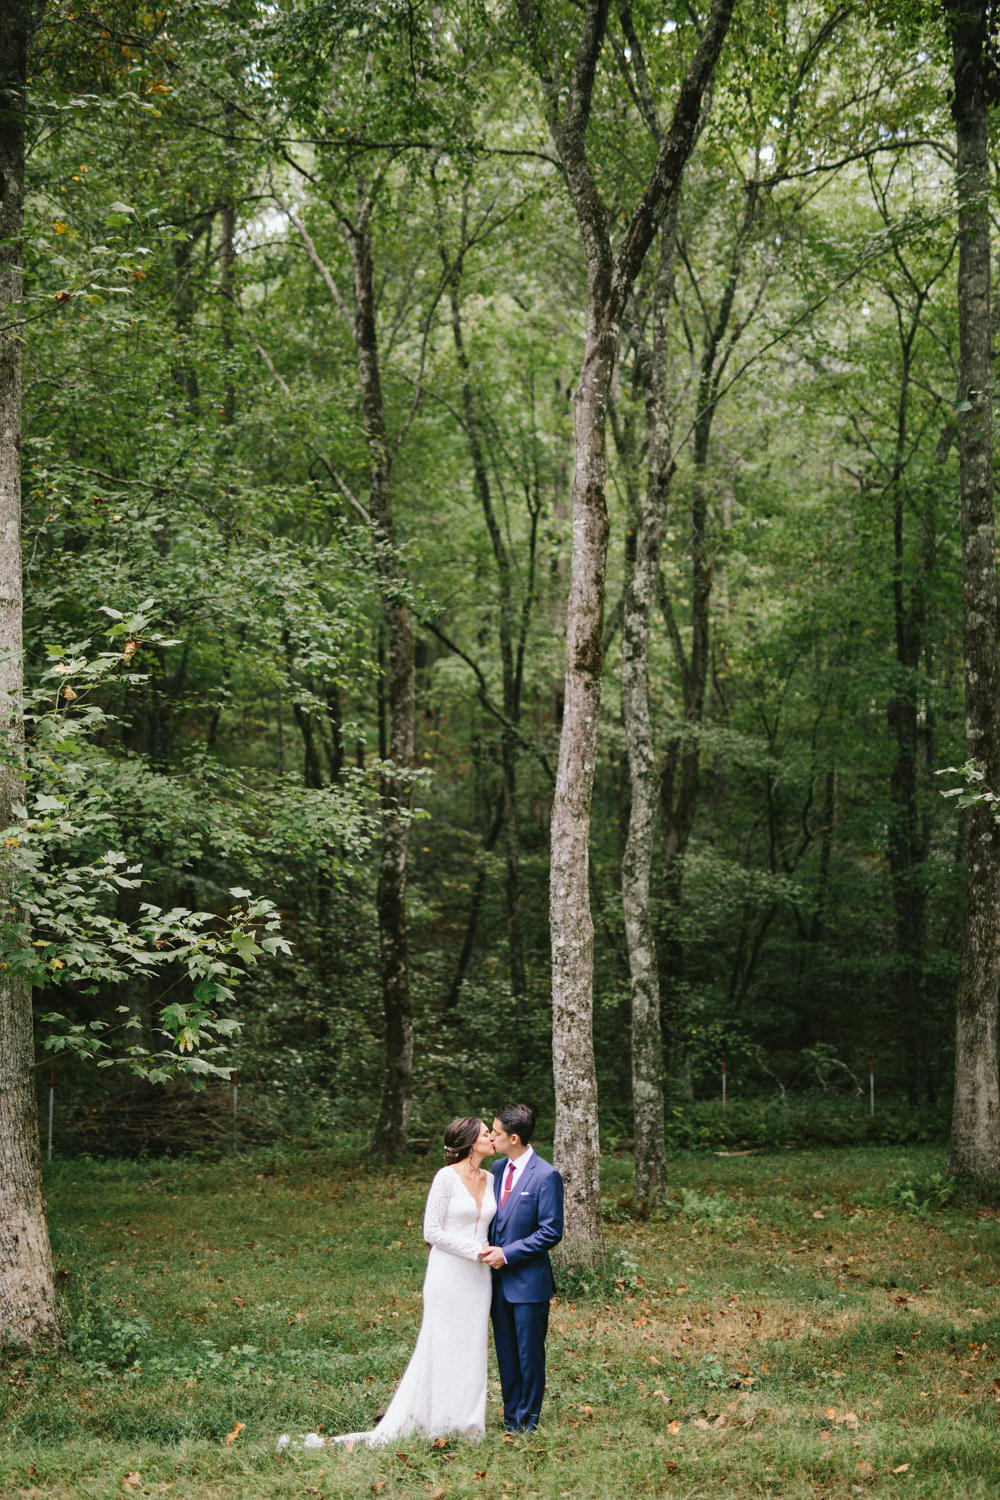 kellumvalleywedding-4071.jpg